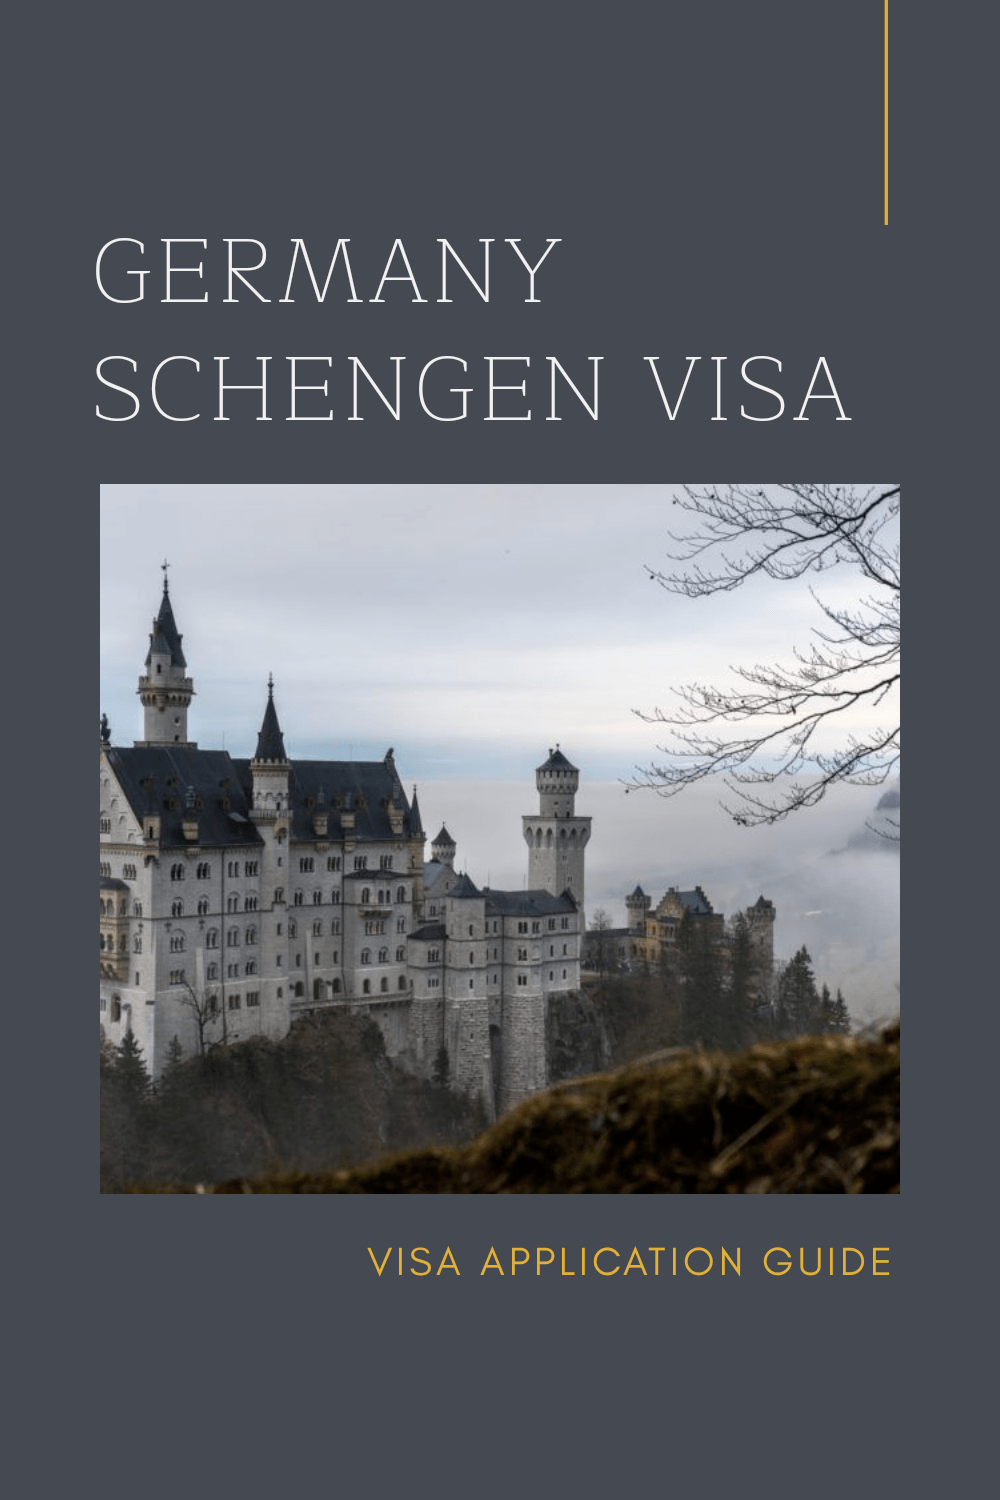 How to Apply For A Germany Schengen Visa with Your Philippines Passport